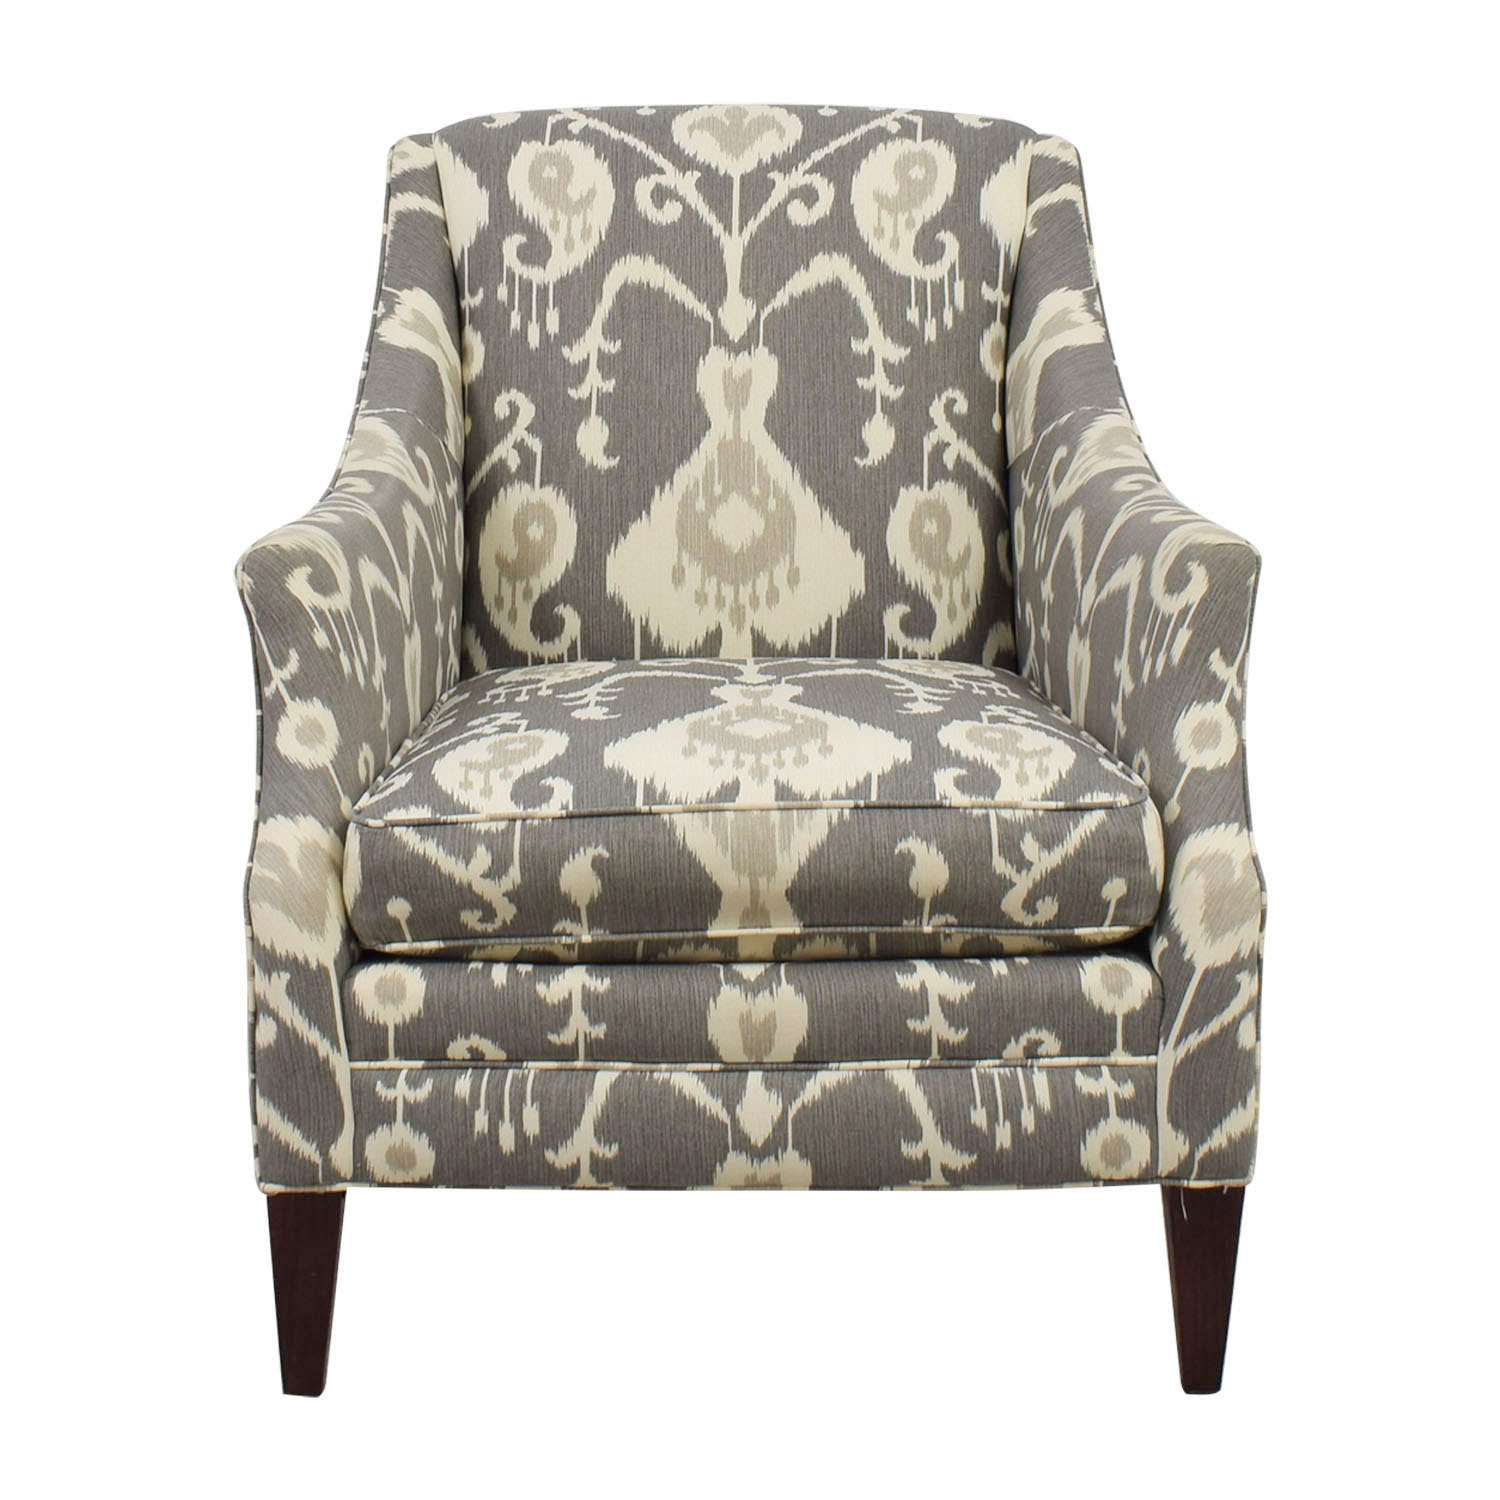 Tremendous 87 Off Boston Interiors Boston Interiors Gray And White Patterned Aviva Accent Chair Chairs Ibusinesslaw Wood Chair Design Ideas Ibusinesslaworg